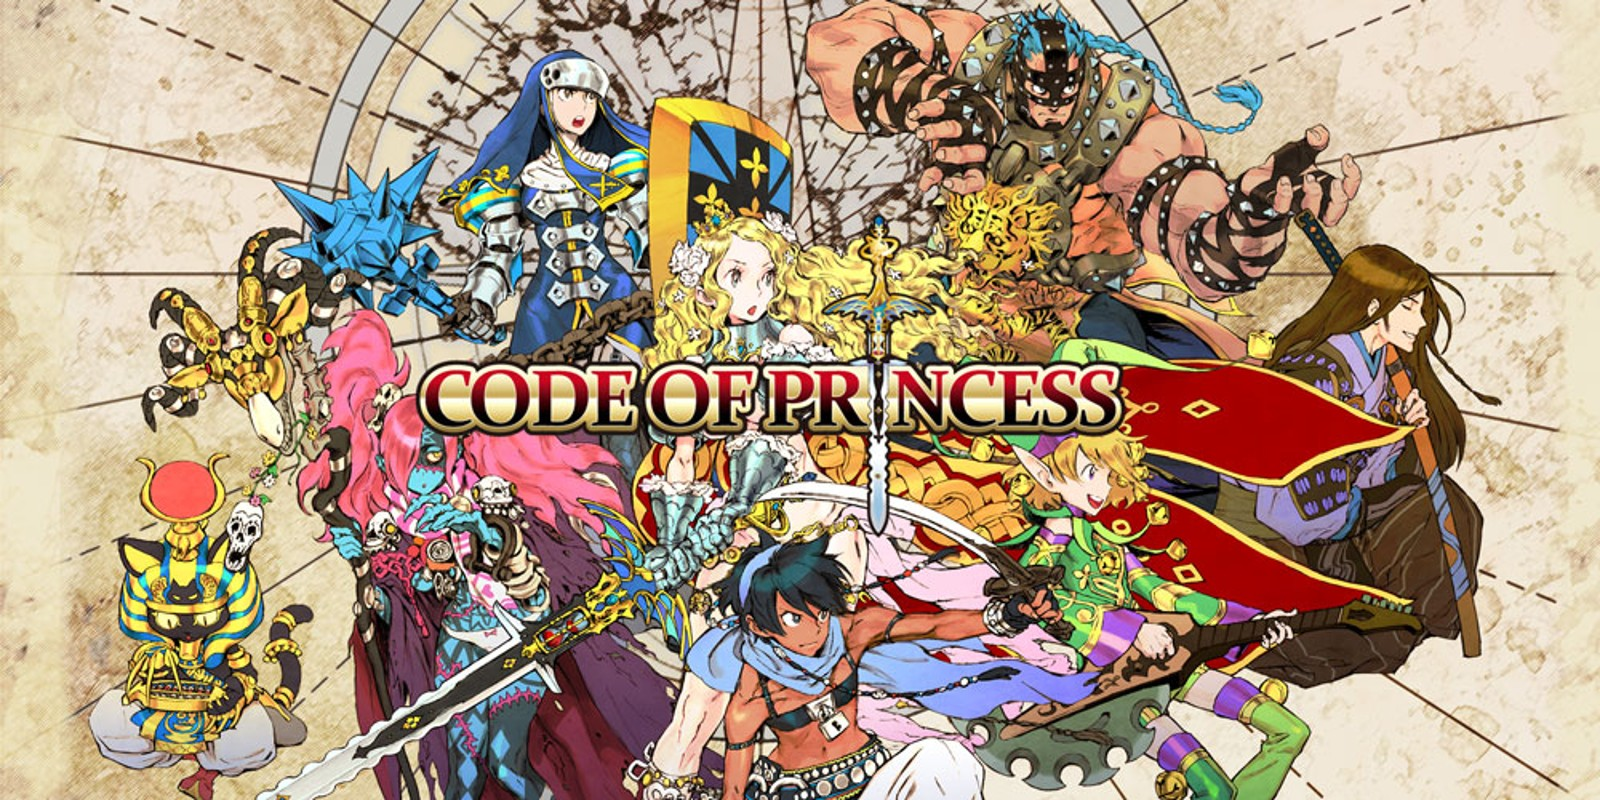 Code of Princess